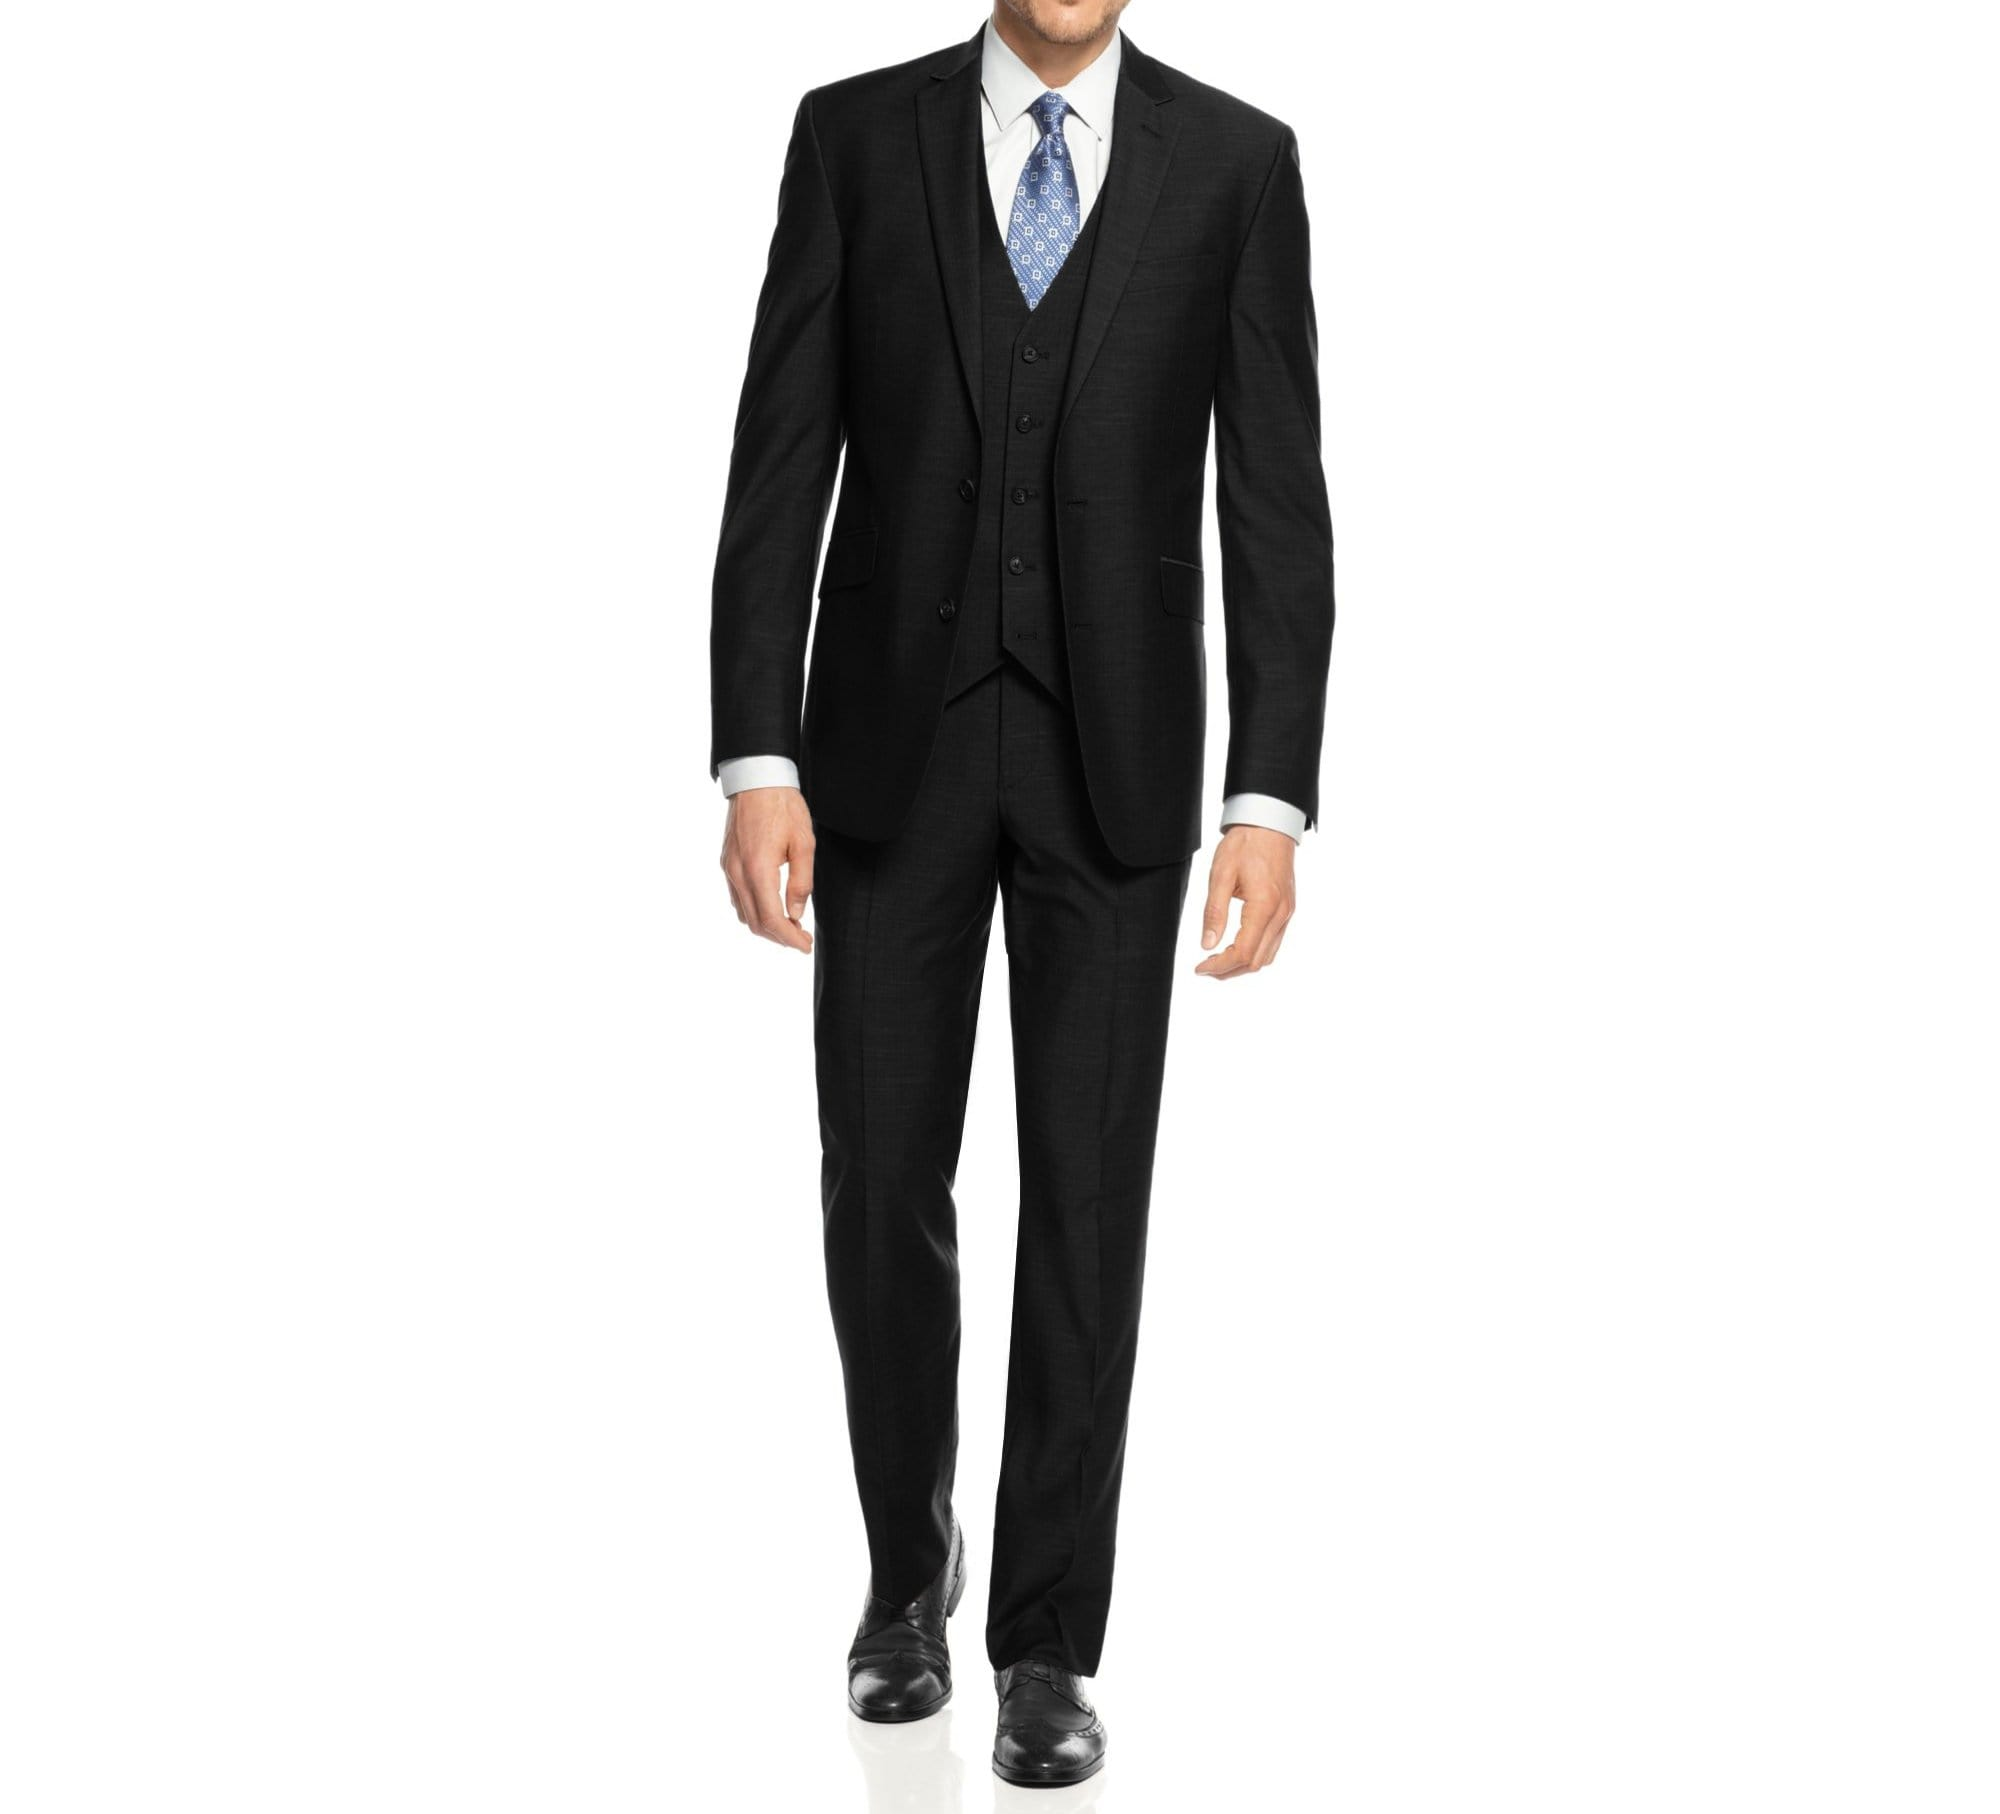 DAILY HAUTE Men's Suits BLACK / 36Rx30W Braveman Men's 3-Piece Three Piece Slim Fit Formal Cut Suit Set